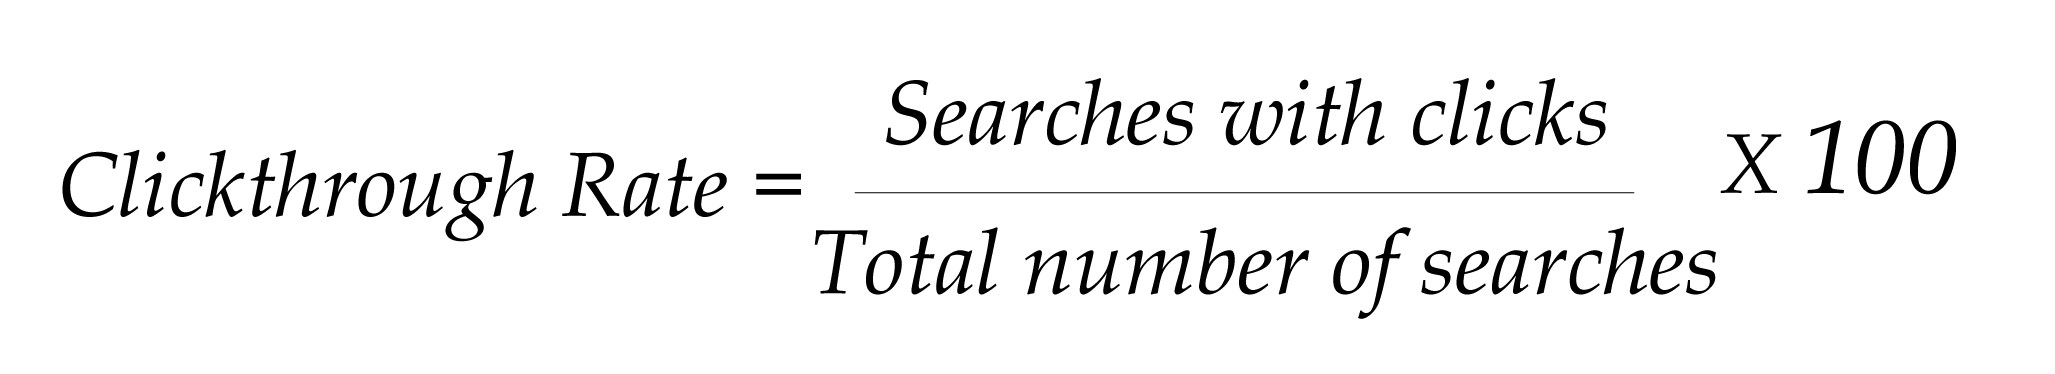 ClickthroughRate